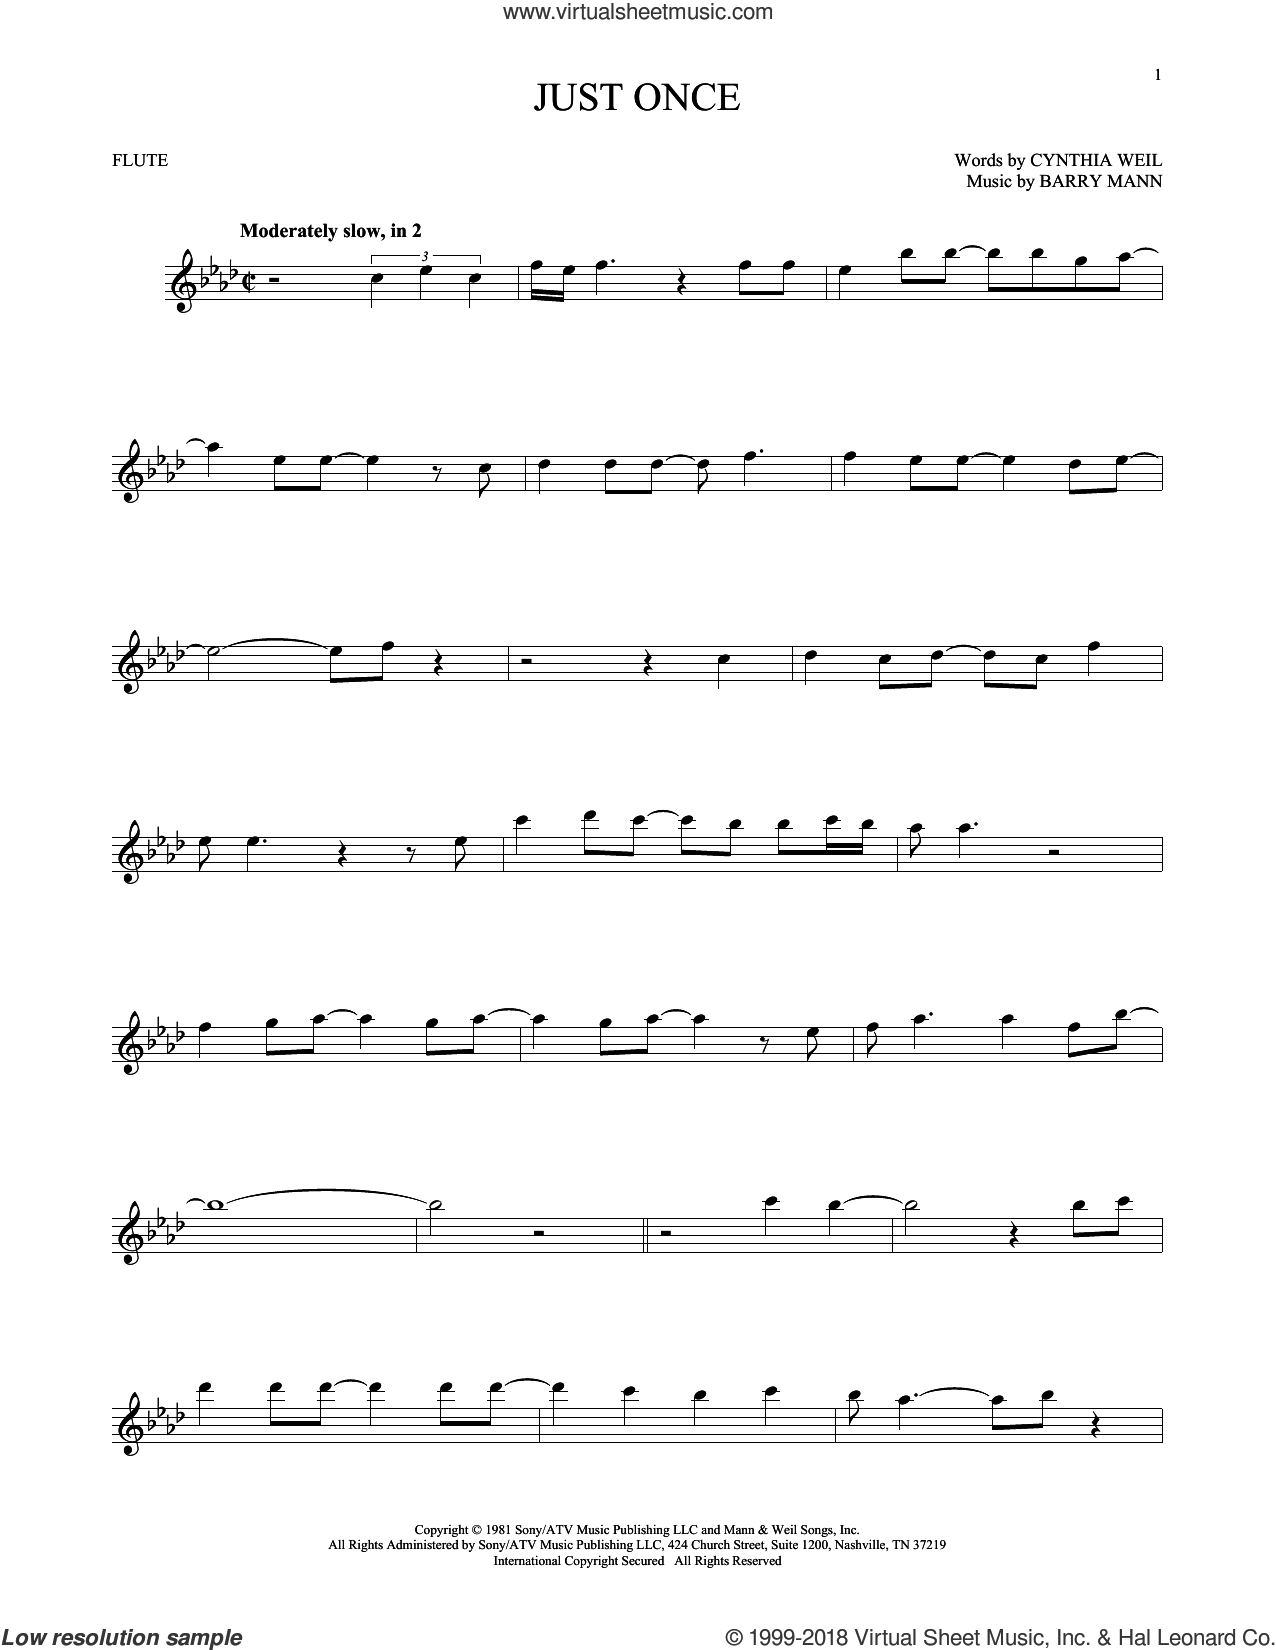 Just Once sheet music for flute solo by Quincy Jones featuring James Ingram, Barry Mann and Cynthia Weil, intermediate skill level